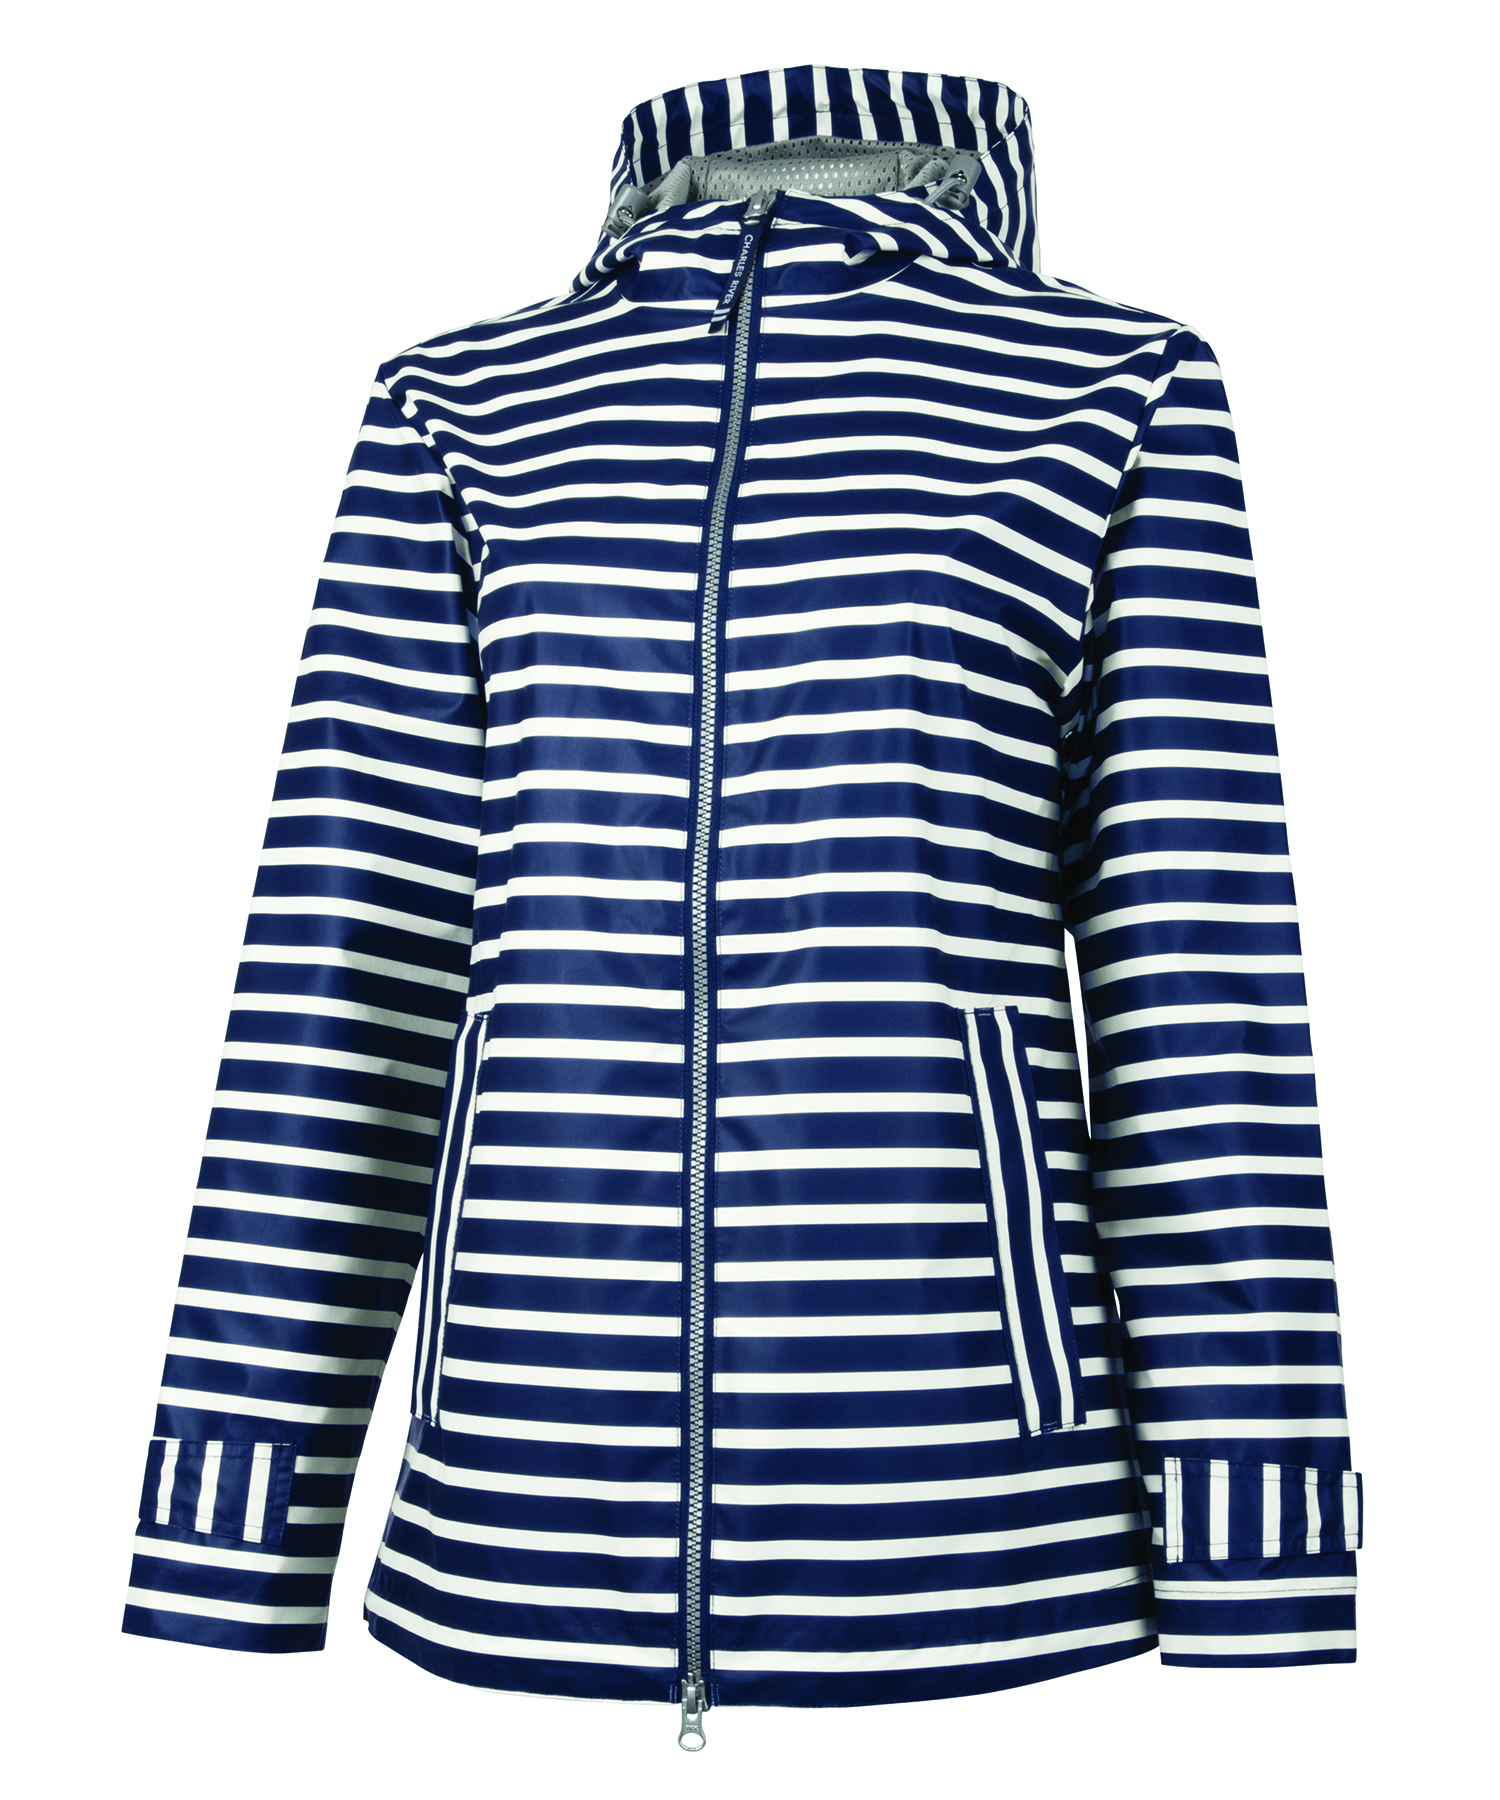 5099 Women's New Englander Rain   Navy/White Strip